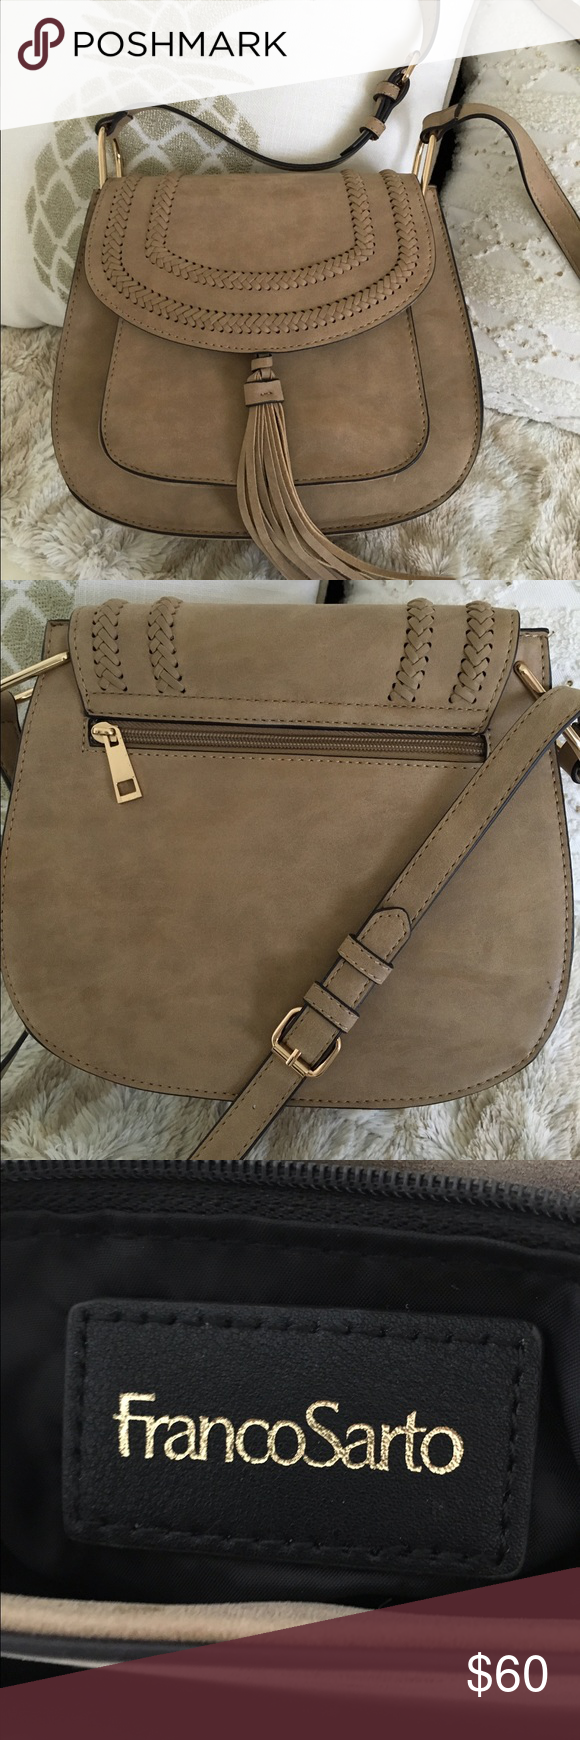 Franco Sarto Crossbody Bag Chloé Inspired Beautiful Faux Suede By In